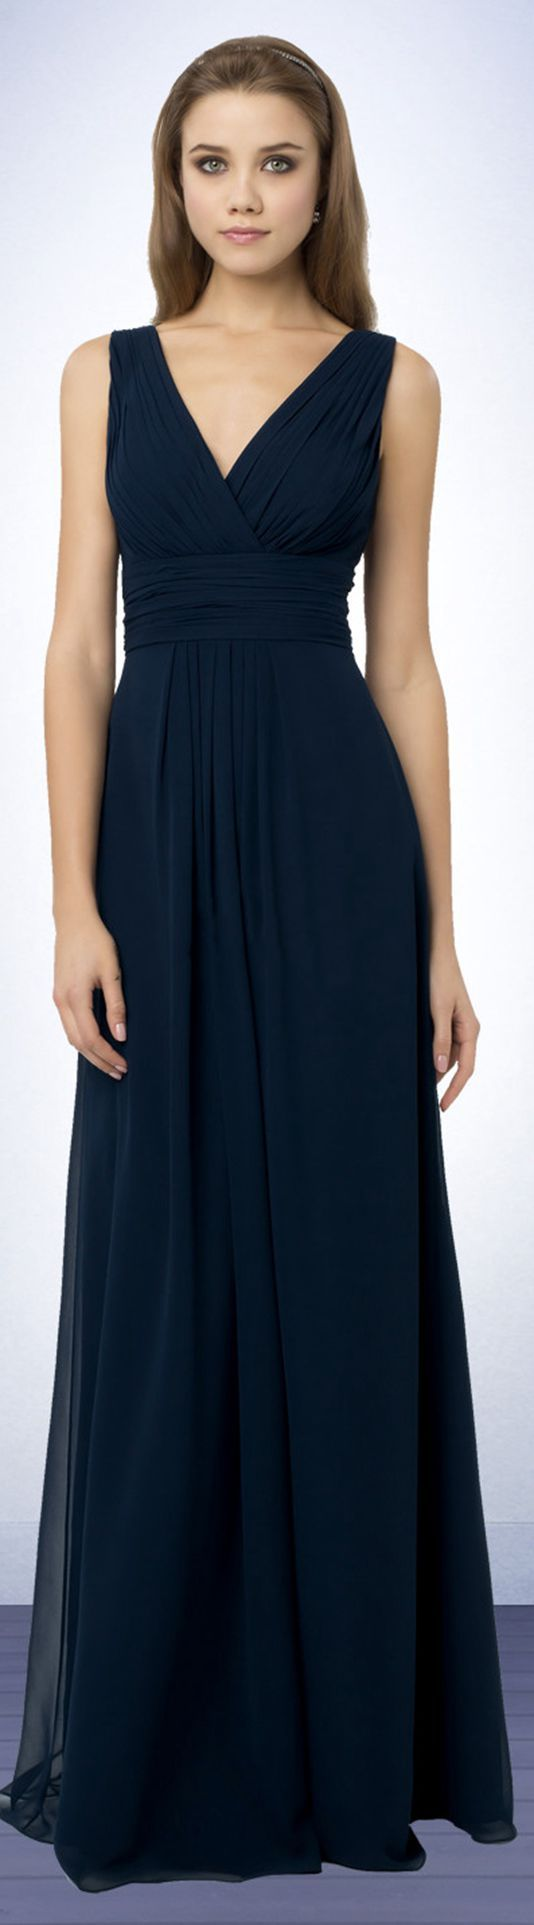 Empire Floor-length Deep V-neck Chiffon Sleeveless Bridesmaid Dresses